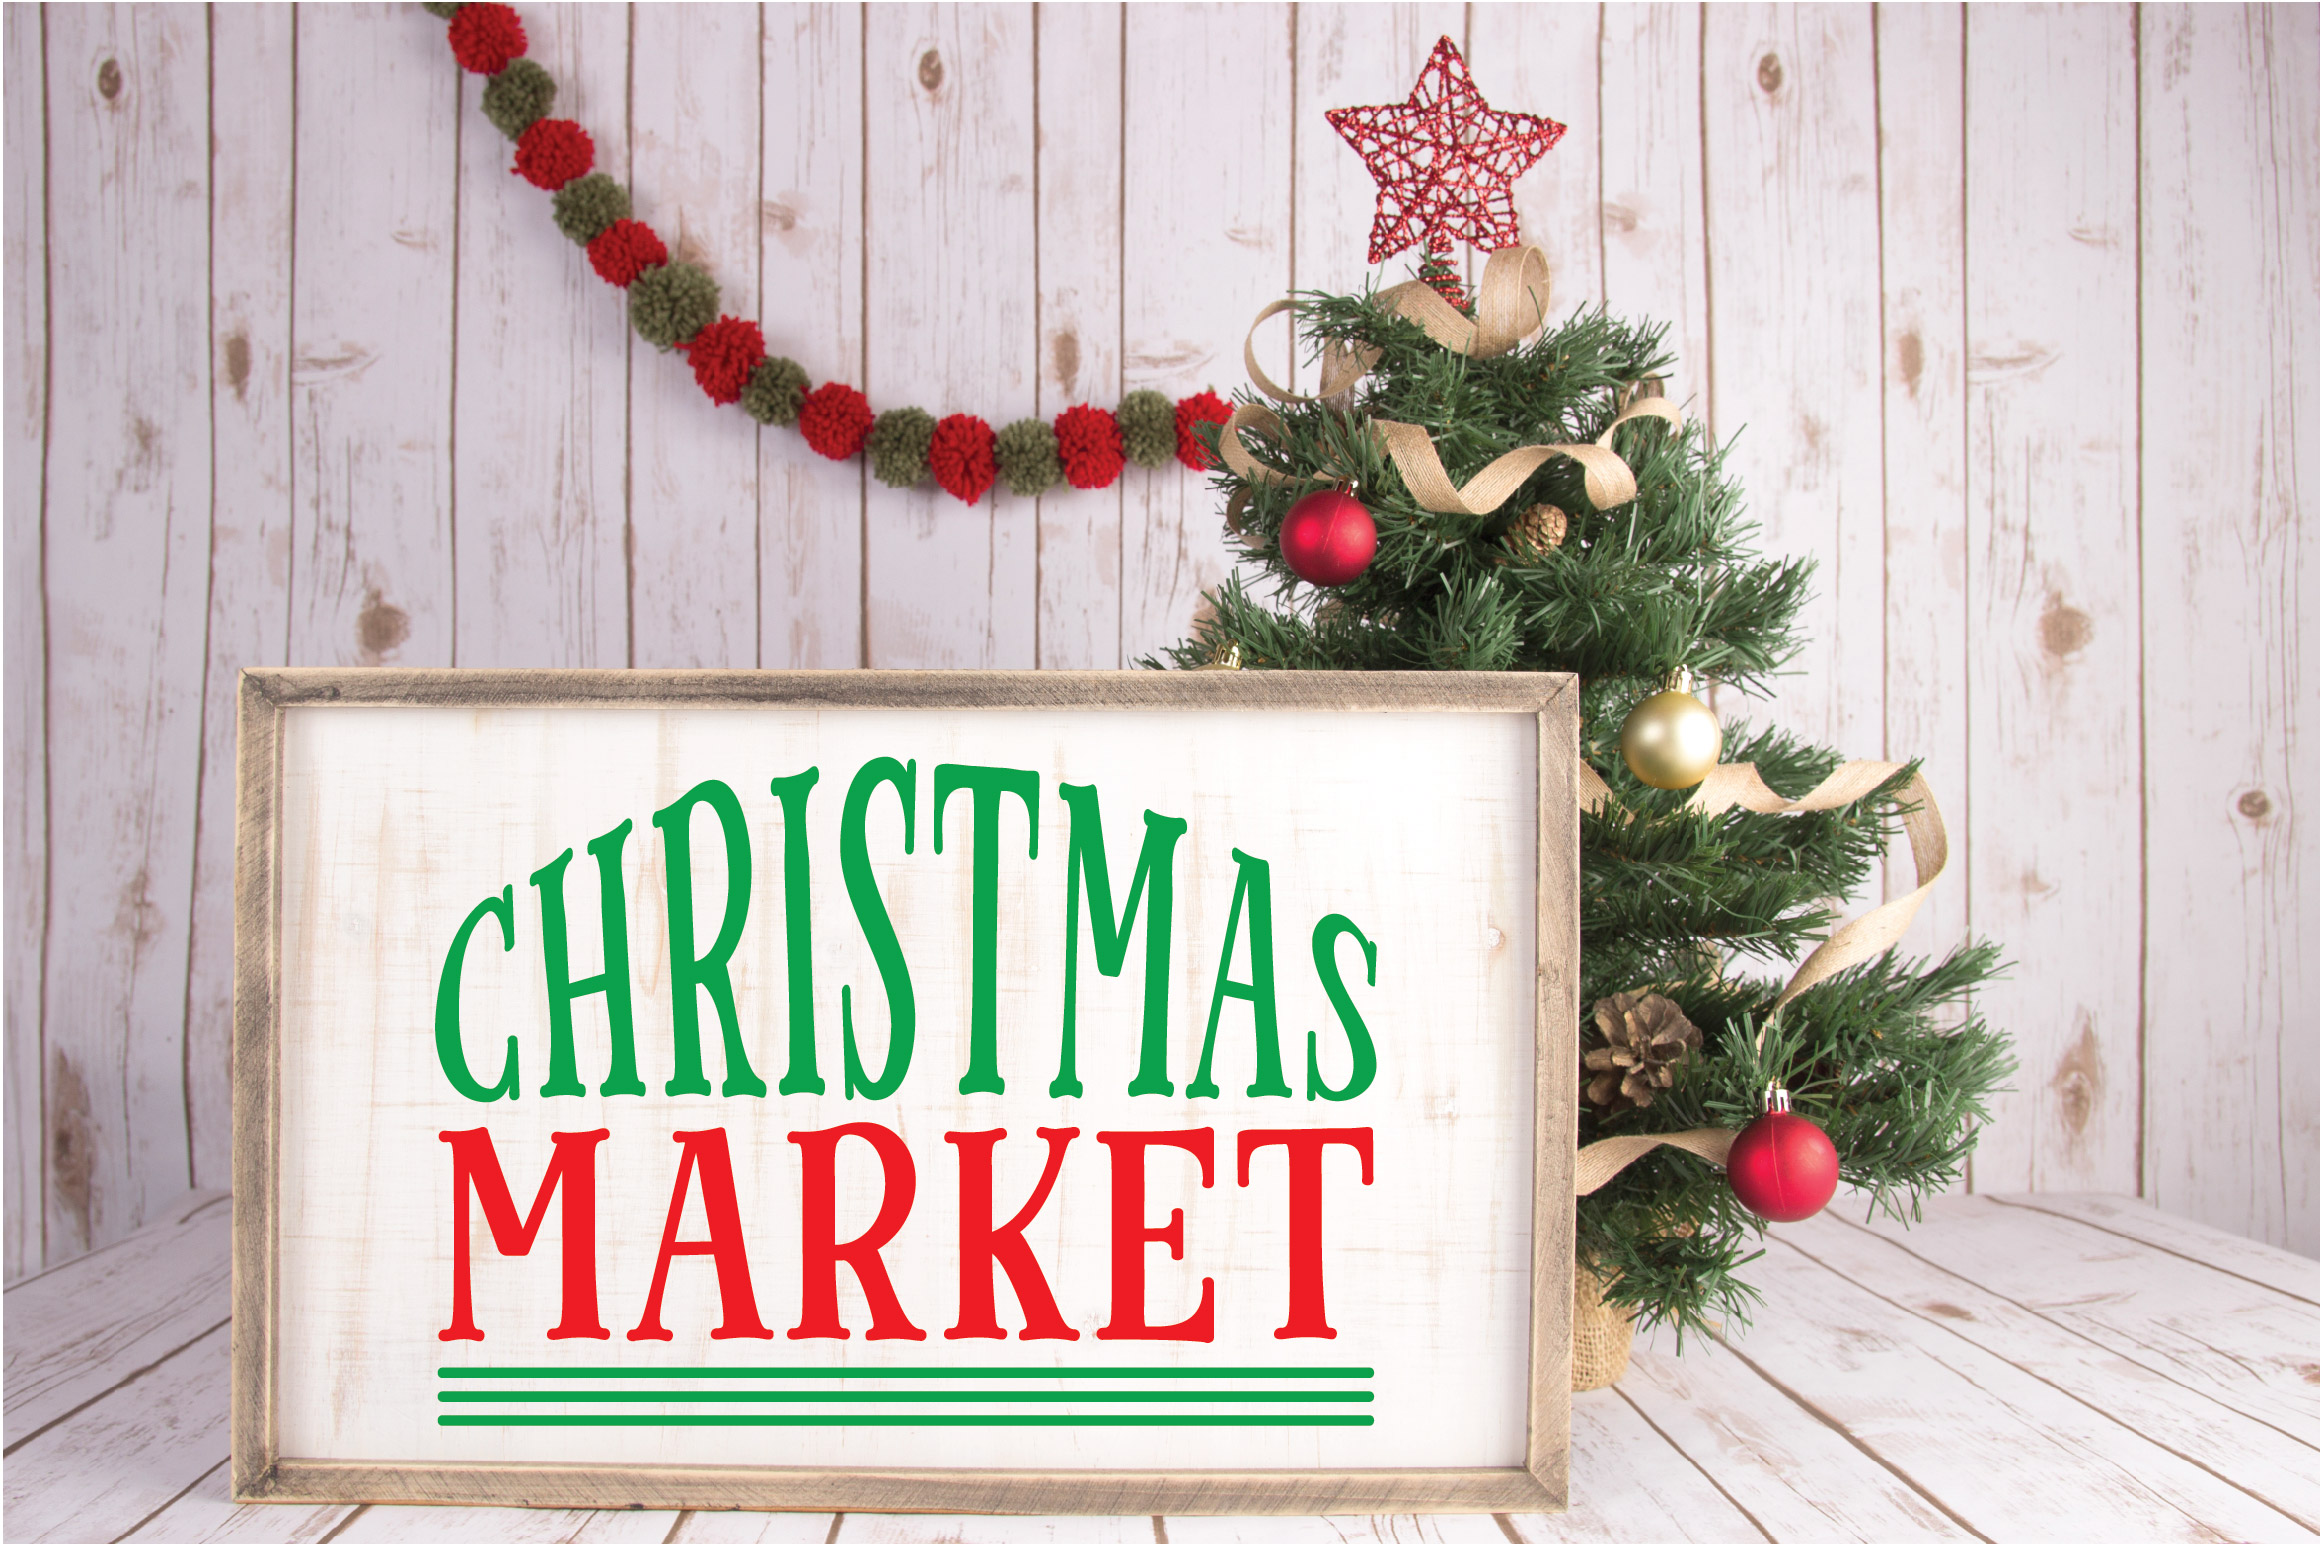 Christmas SVG Cut File - Christmas Market SVG DXF PNG EPS example image 2